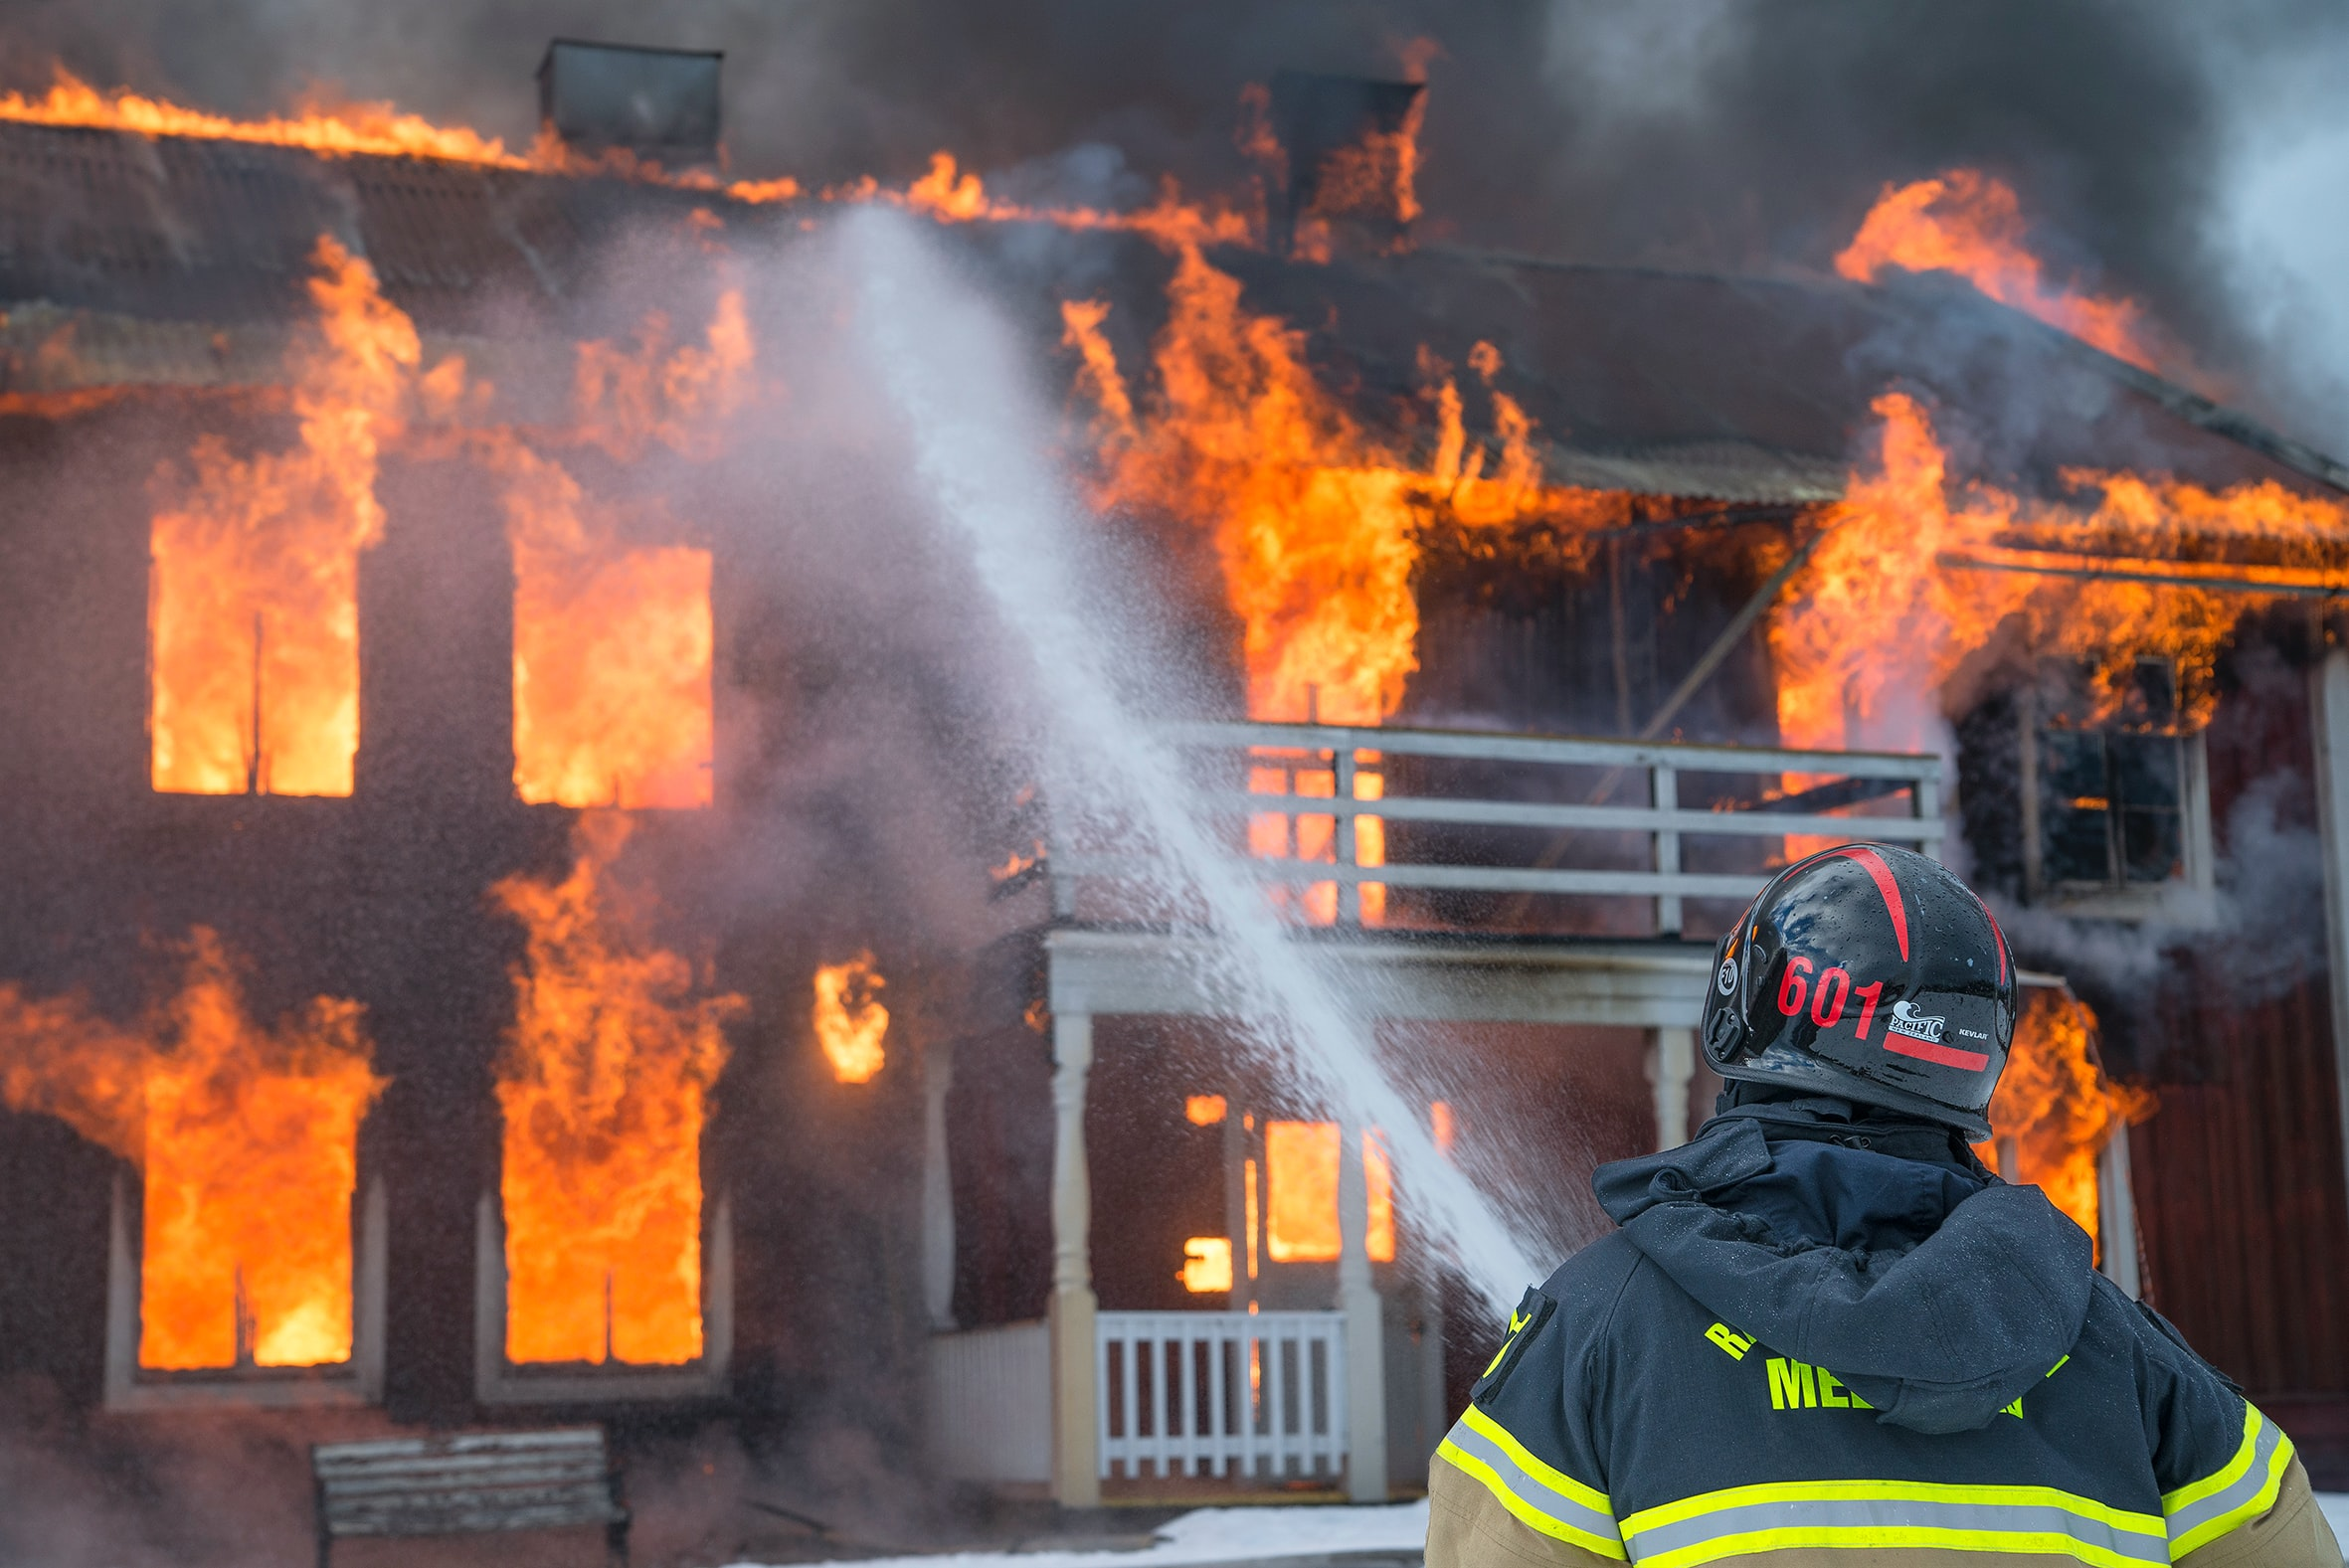 Picture of a fire-figher spraying water on a burning house